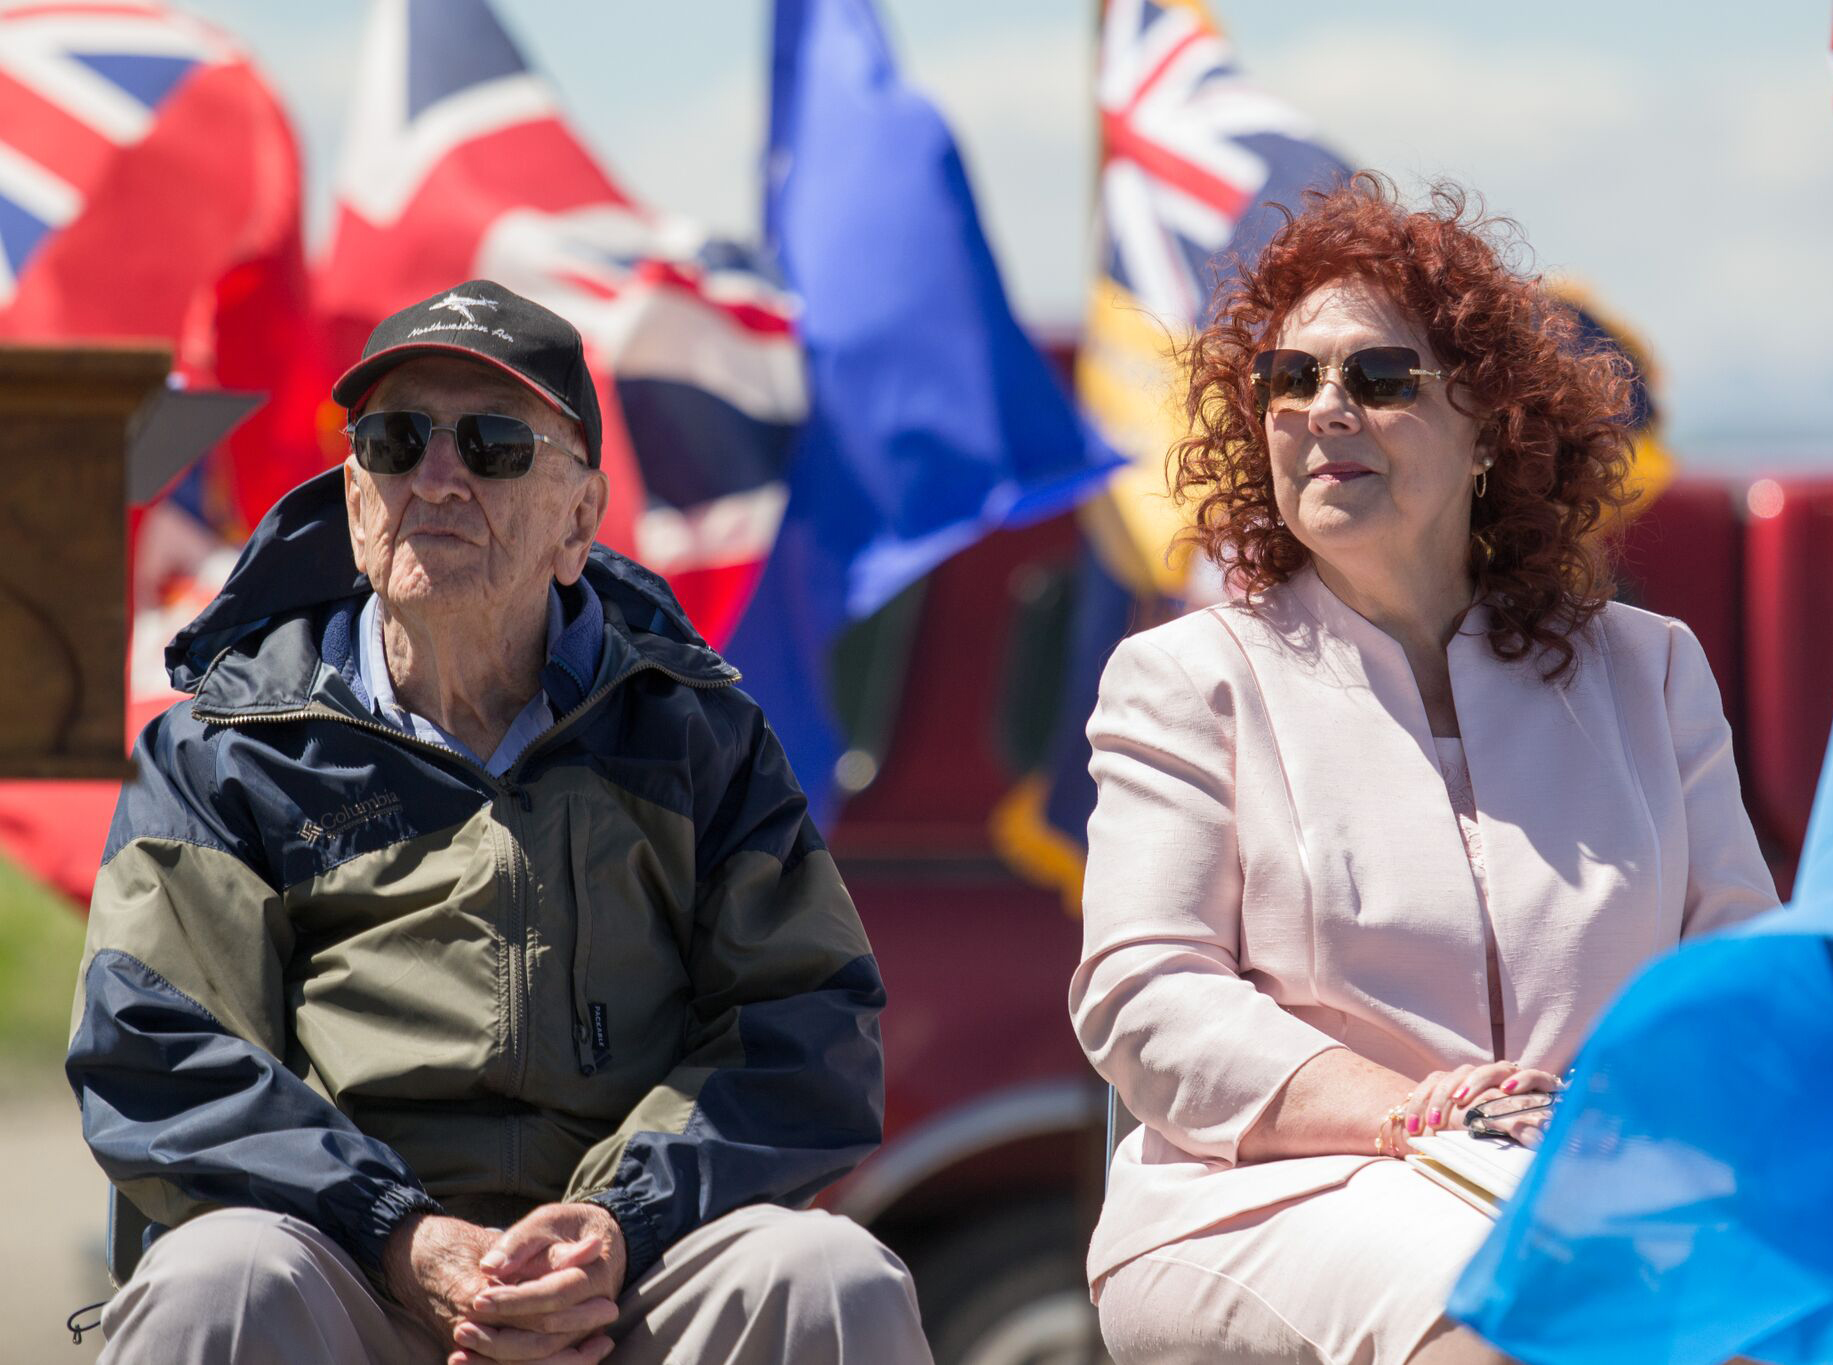 Squadron Leader Rae Churchill and United Church minister Susan Wilkinson-Matticks listen to the speakers during No. 31 Elementary Flying Training School De Winton's 75th anniversary celebration on June 15, 2016. PHOTO: Courtesy of Anne Gafiuk